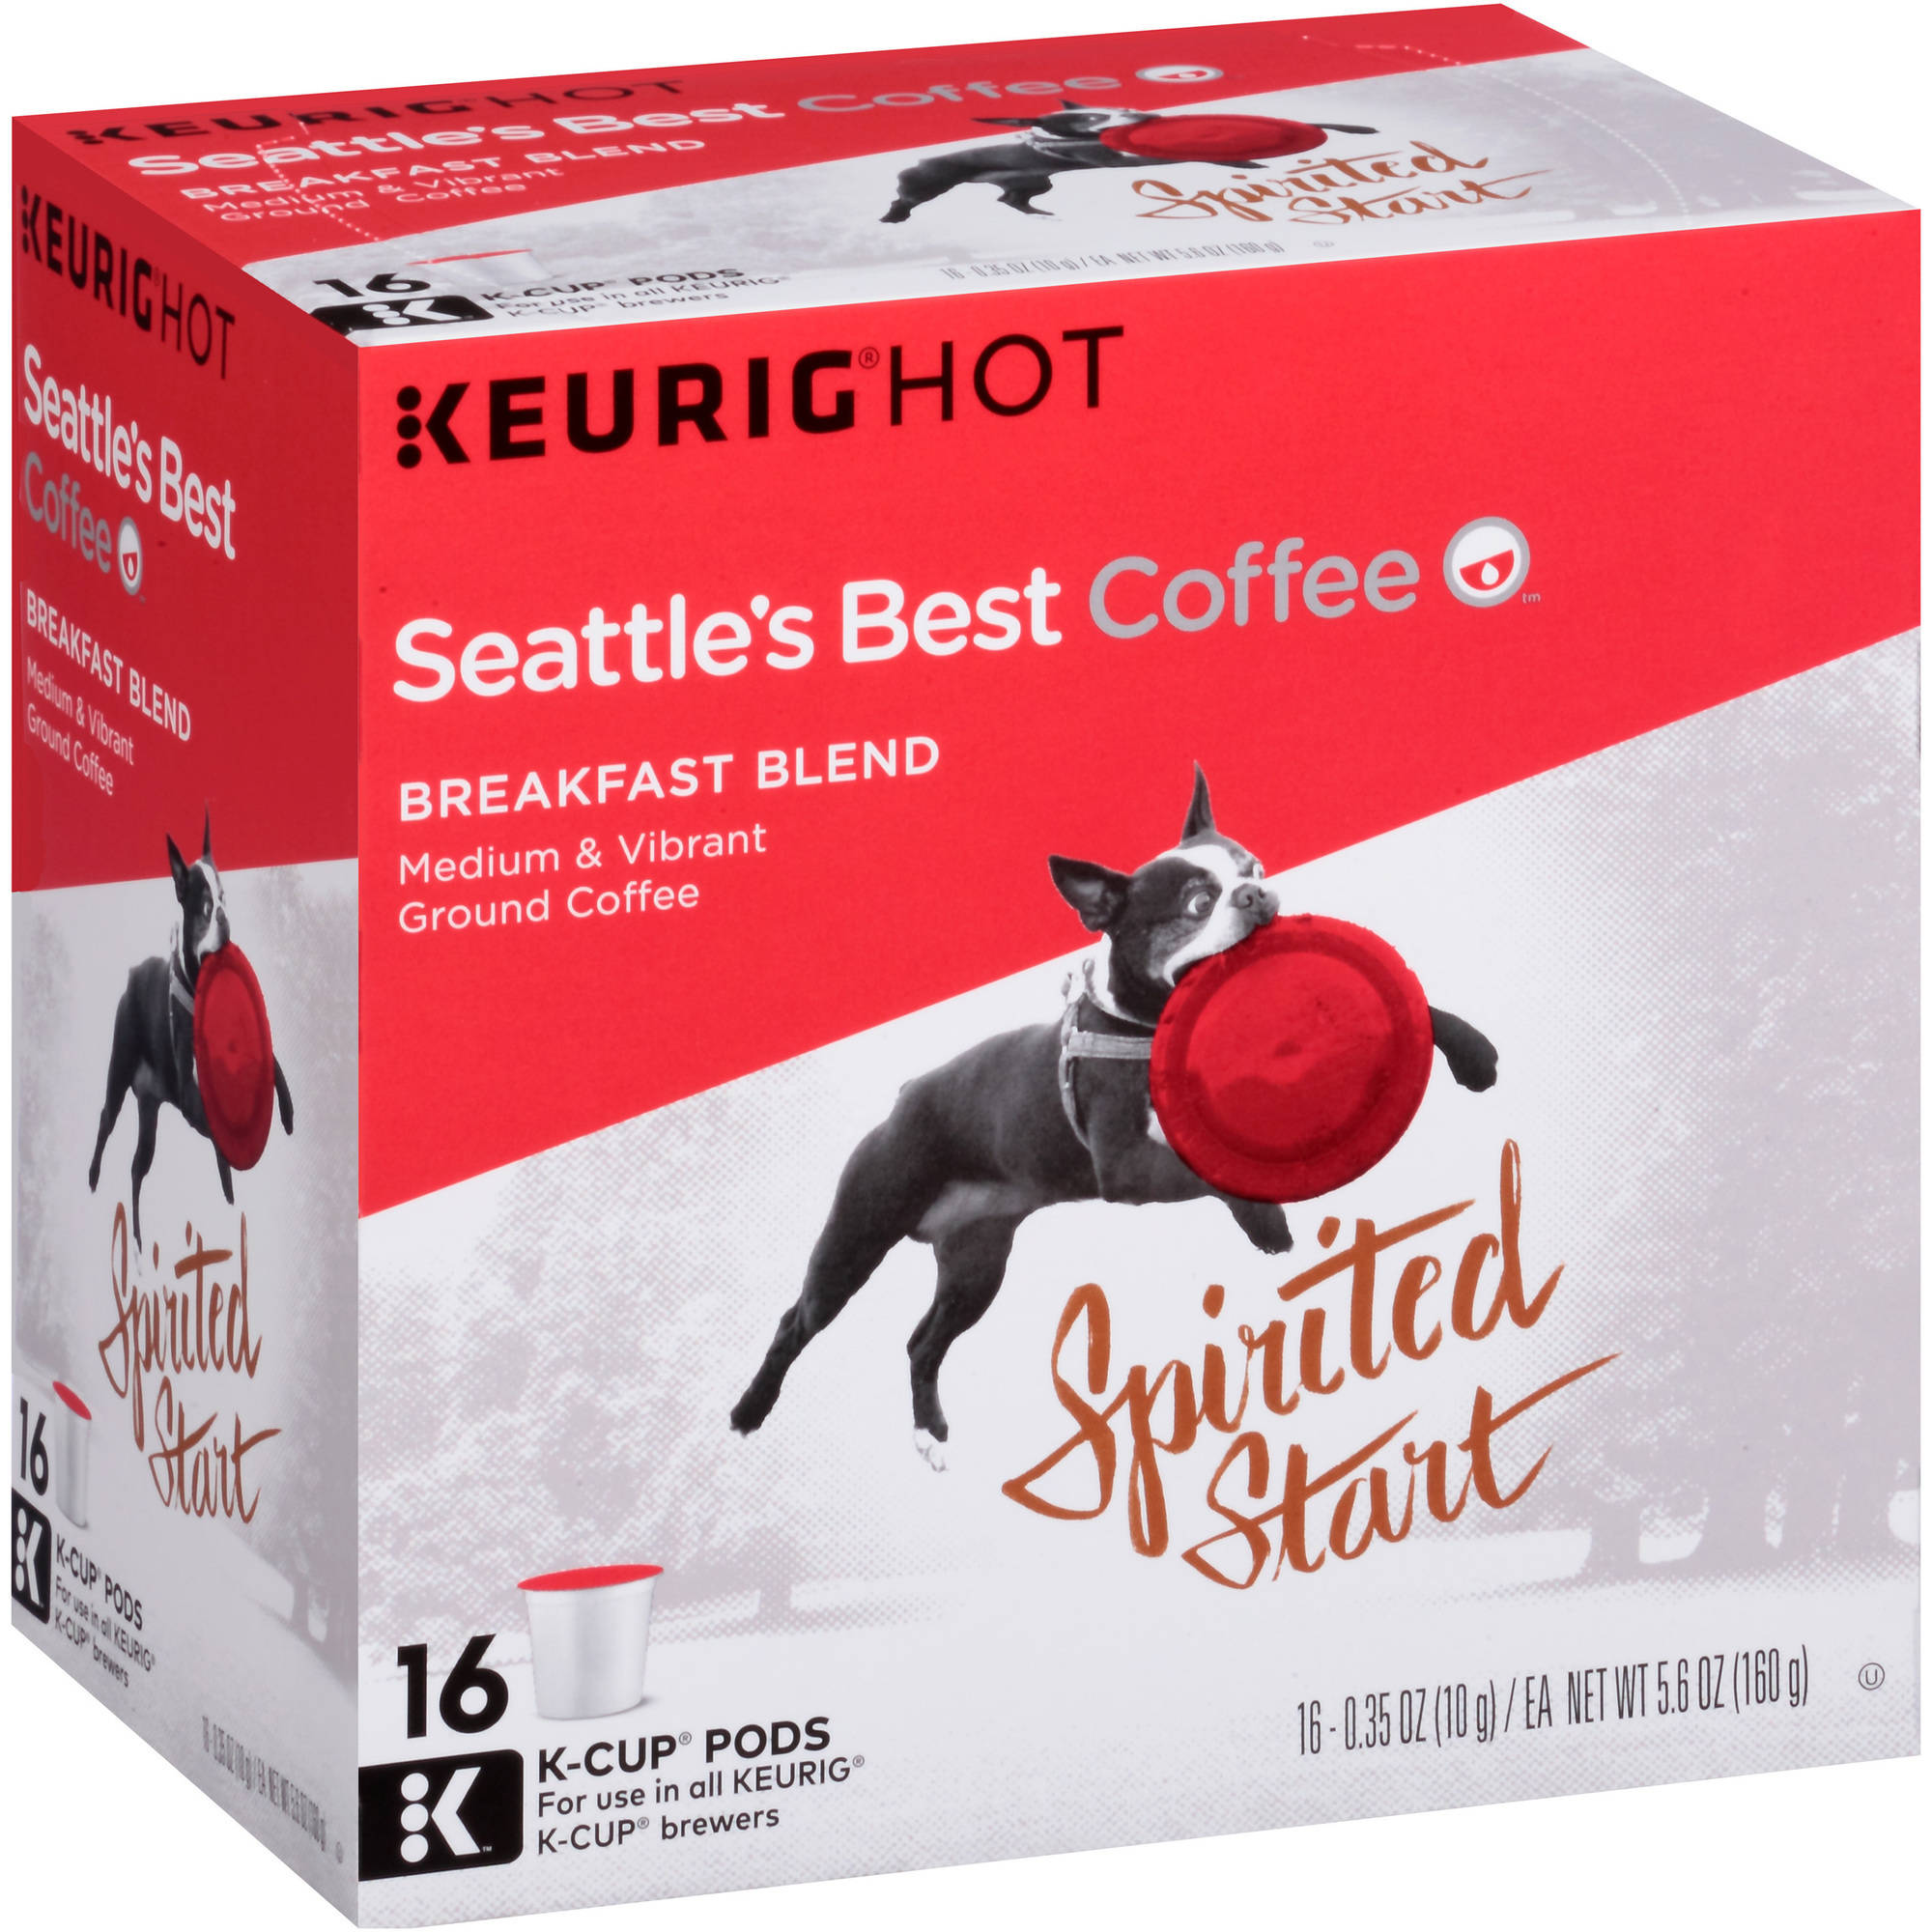 Seattle's Best Coffee��� Breakfast Blend Medium & Vibrant Coffee K-Cup�� Pods 16 ct Box